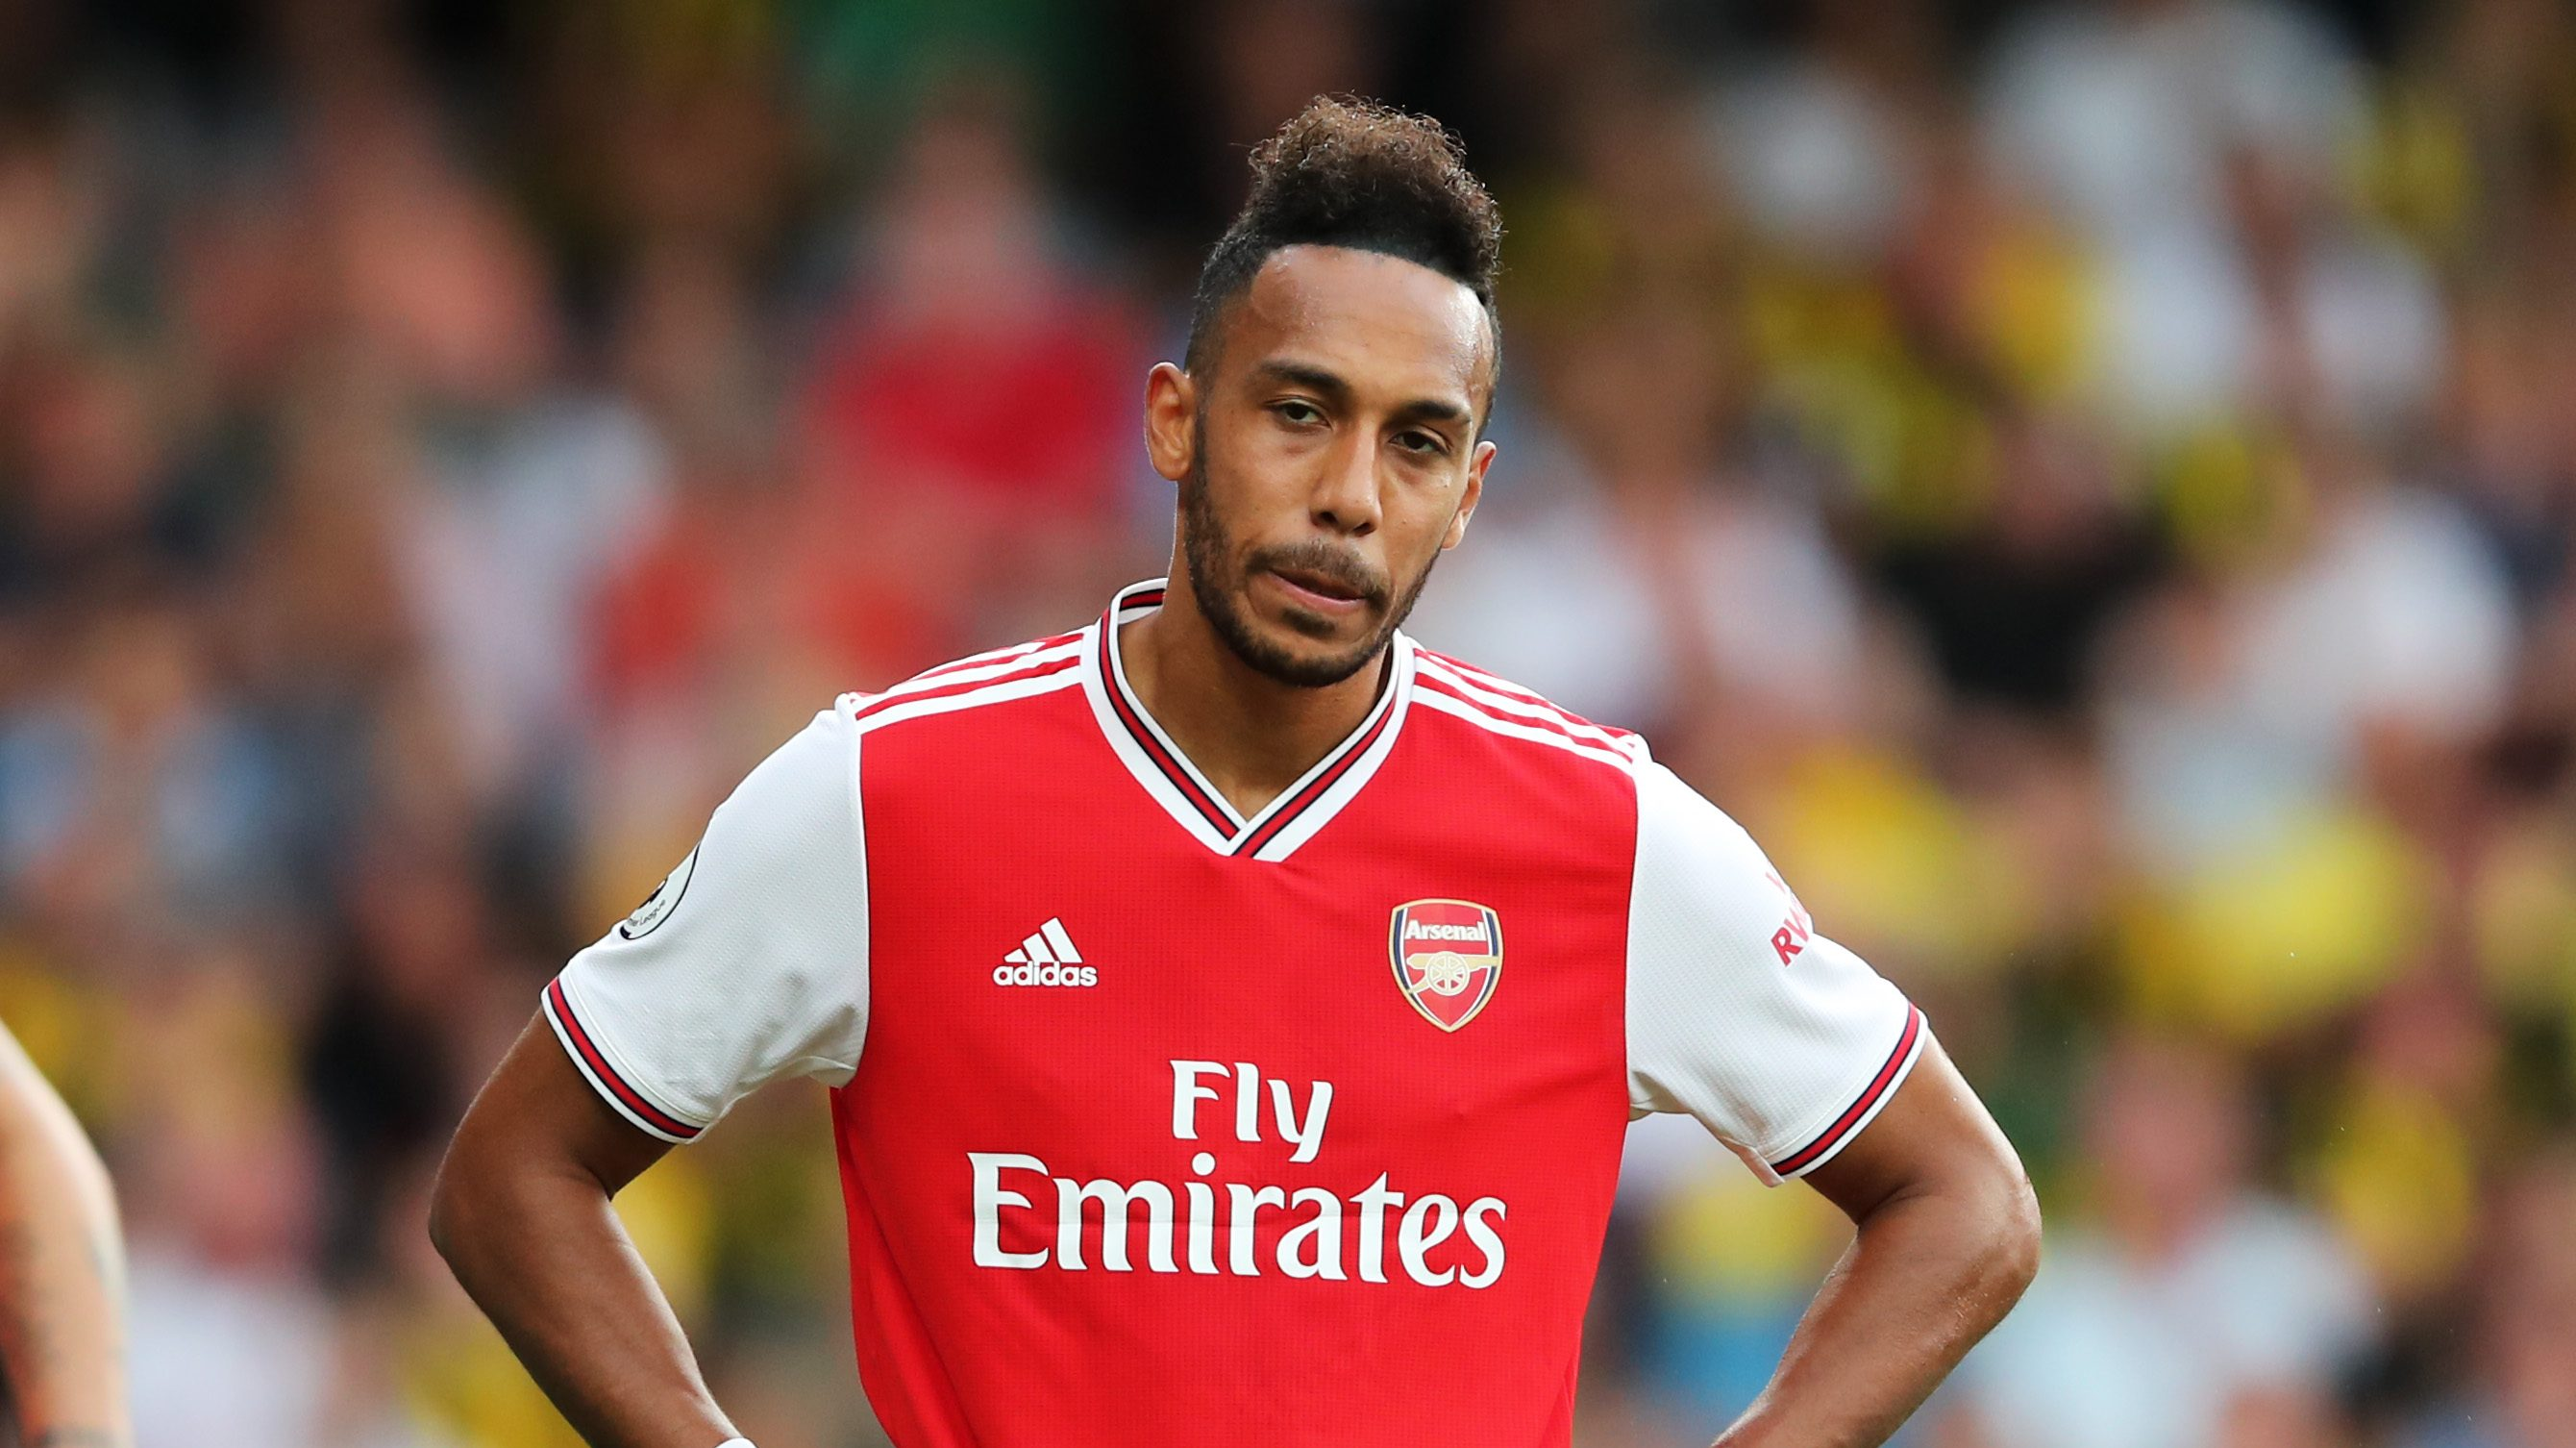 Transfer rumor roundup: Aubameyang to Barca; Lemar to Arsenal